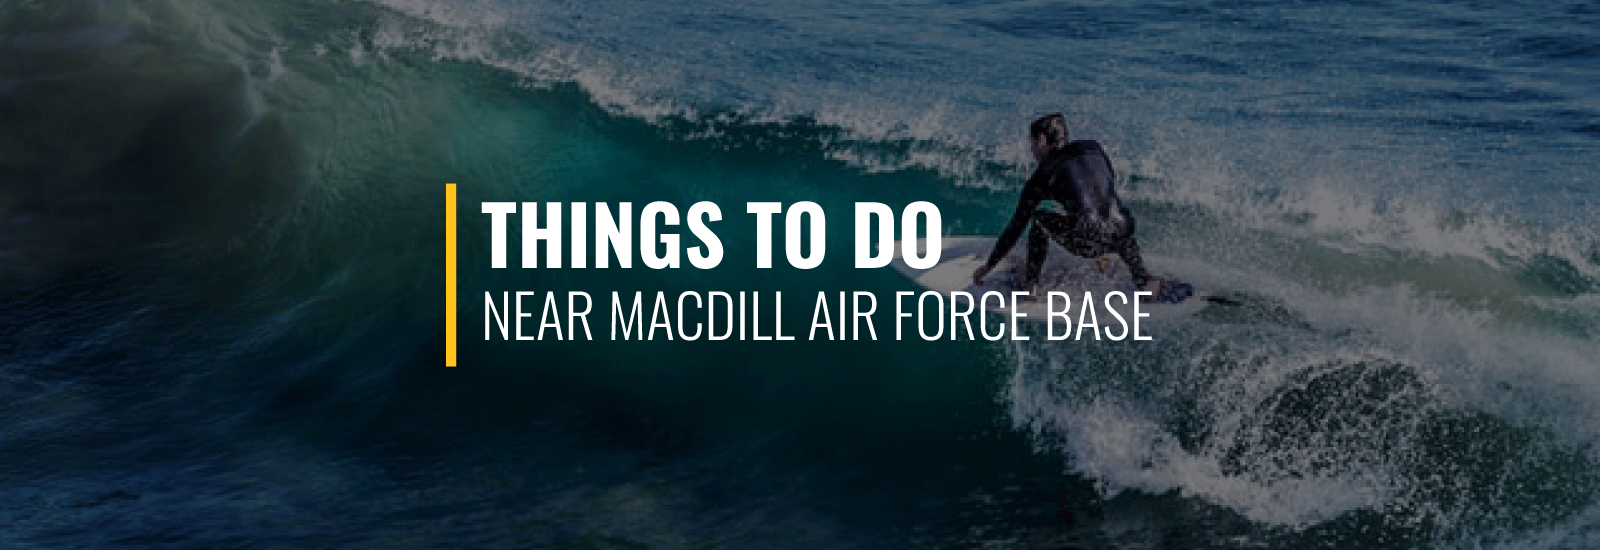 Things to Do Near MacDill Air Force Base